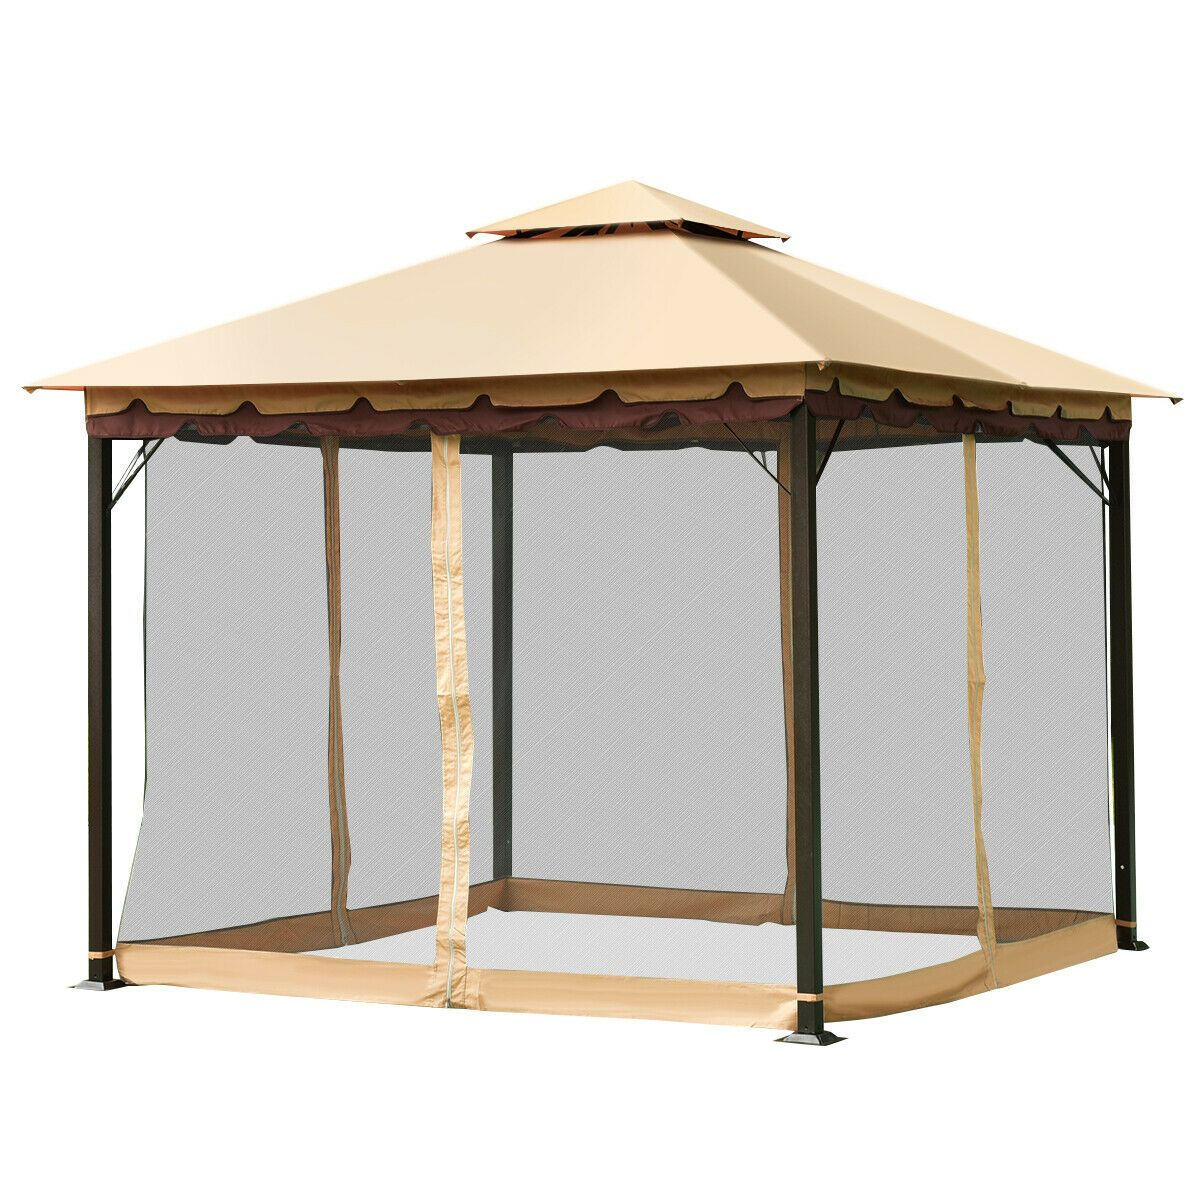 Online Gym Shop Cb19809 10 X 10 Ft Outdoor Gazebo 2 Tier Patio Tent Walmart Com In 2020 Steel Gazebo Canopy Outdoor Patio Tents